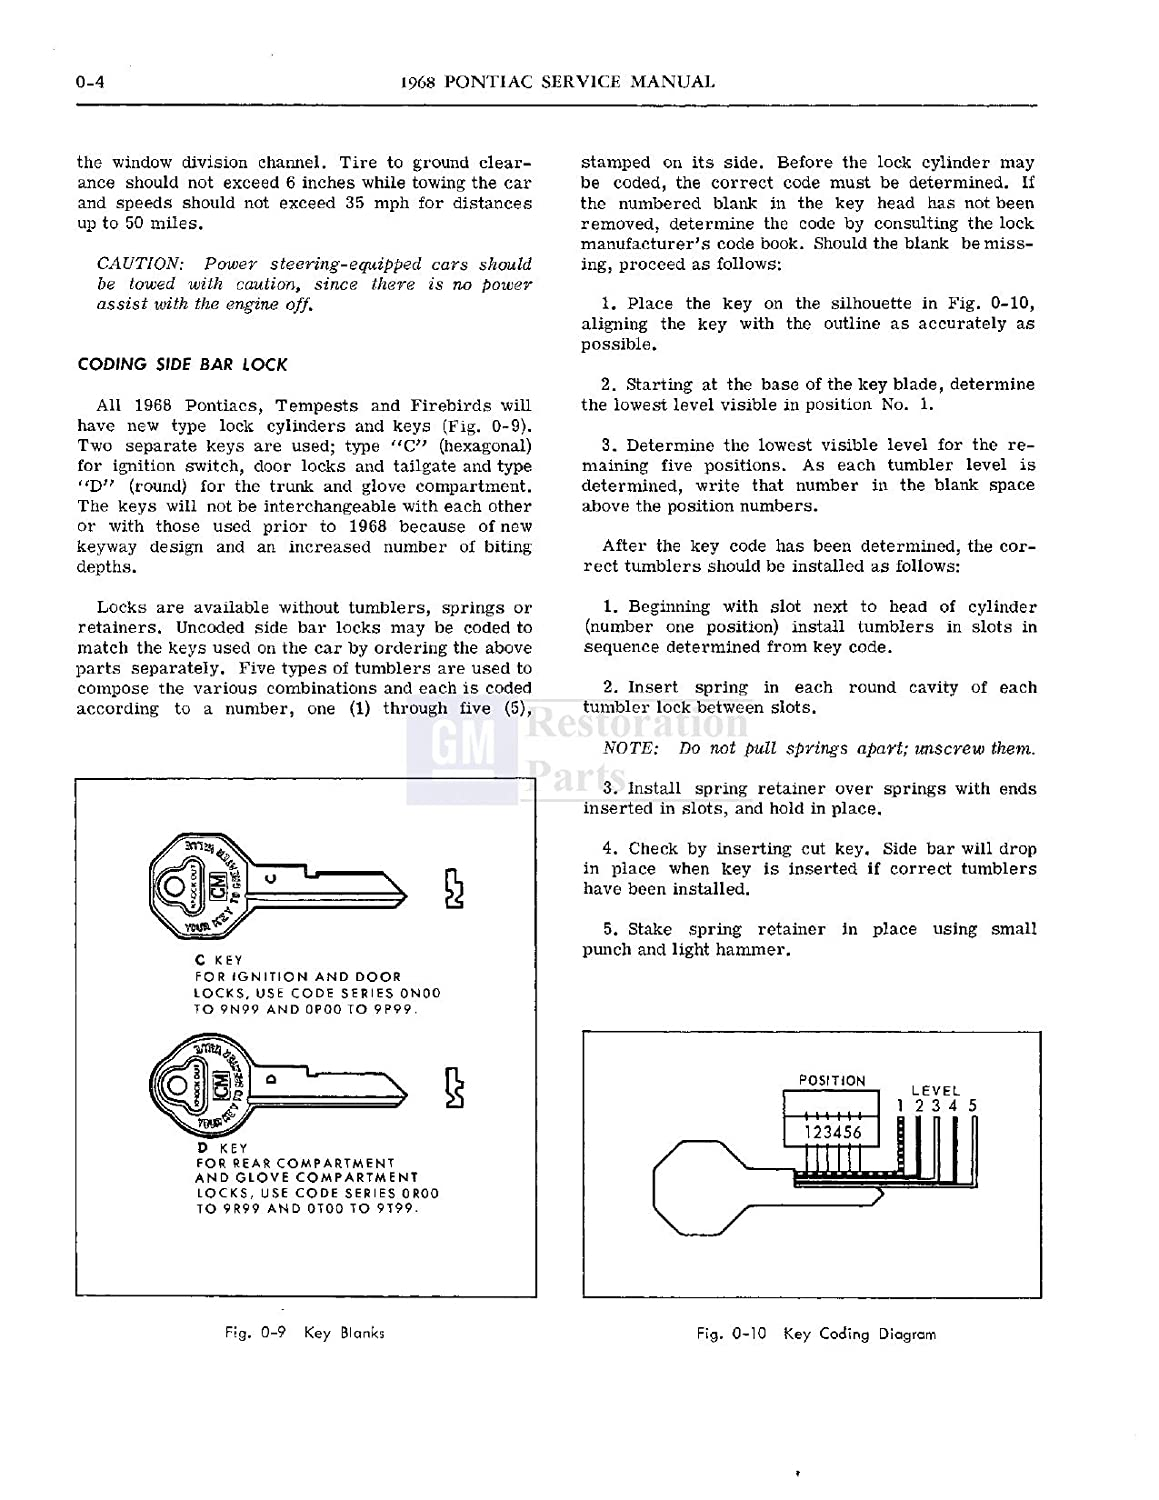 Amazon.com: 1968 PONTIAC REPAIR SHOP & SERVICE MANUAL - Firebird, GTO,  Tempest, LeMans, Grand Prix, Bonneville, Executive, and Catalina.